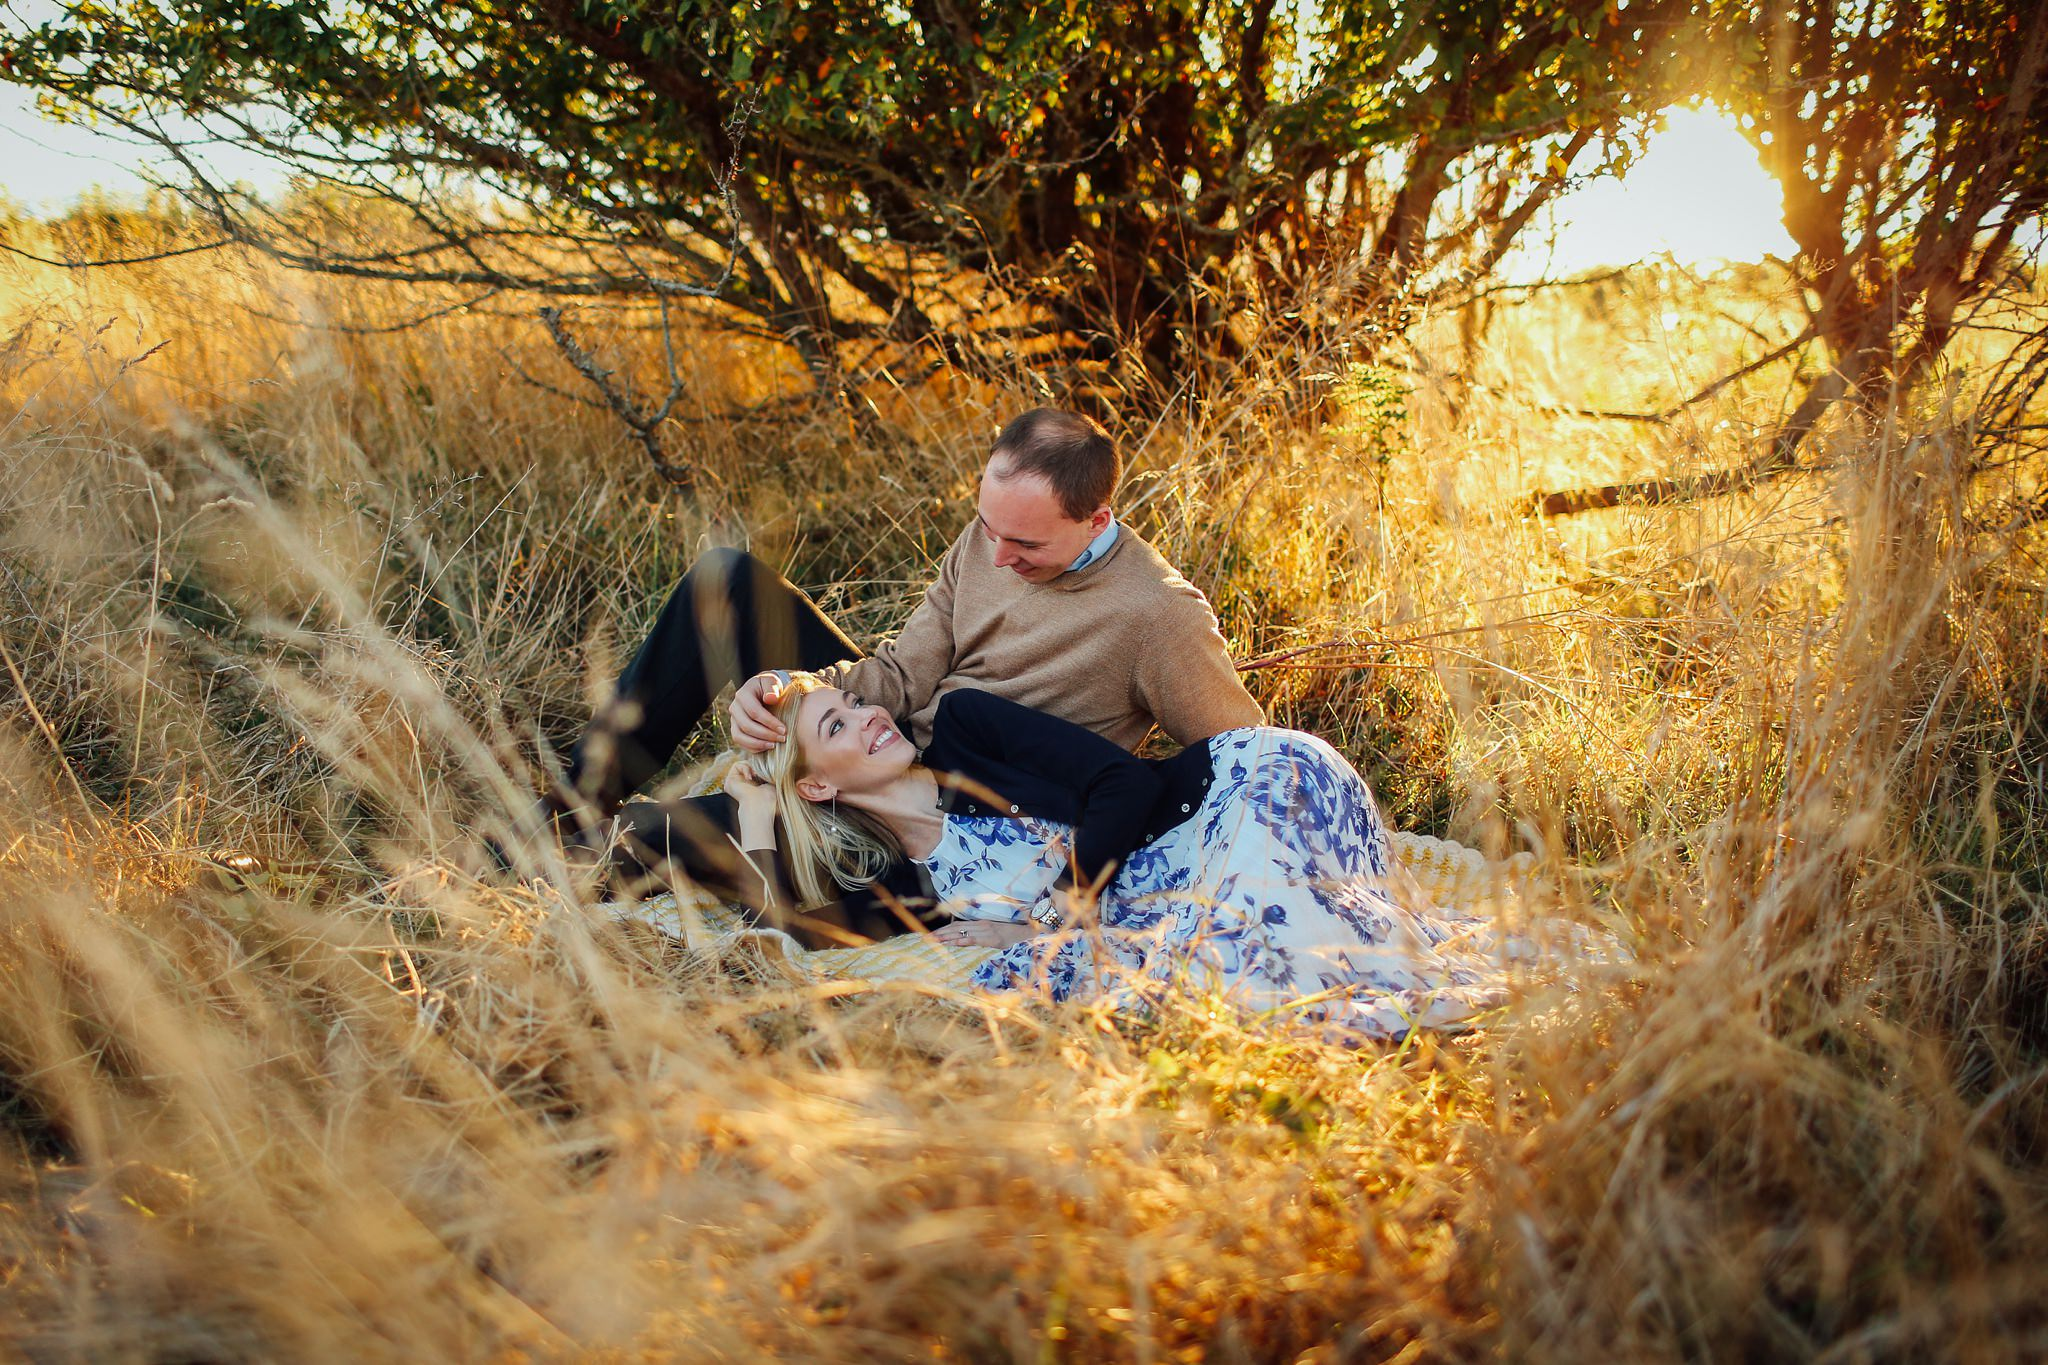 Whidbey-Island-Family-Photographer-Kara-Chappell-Photography_0970.jpg